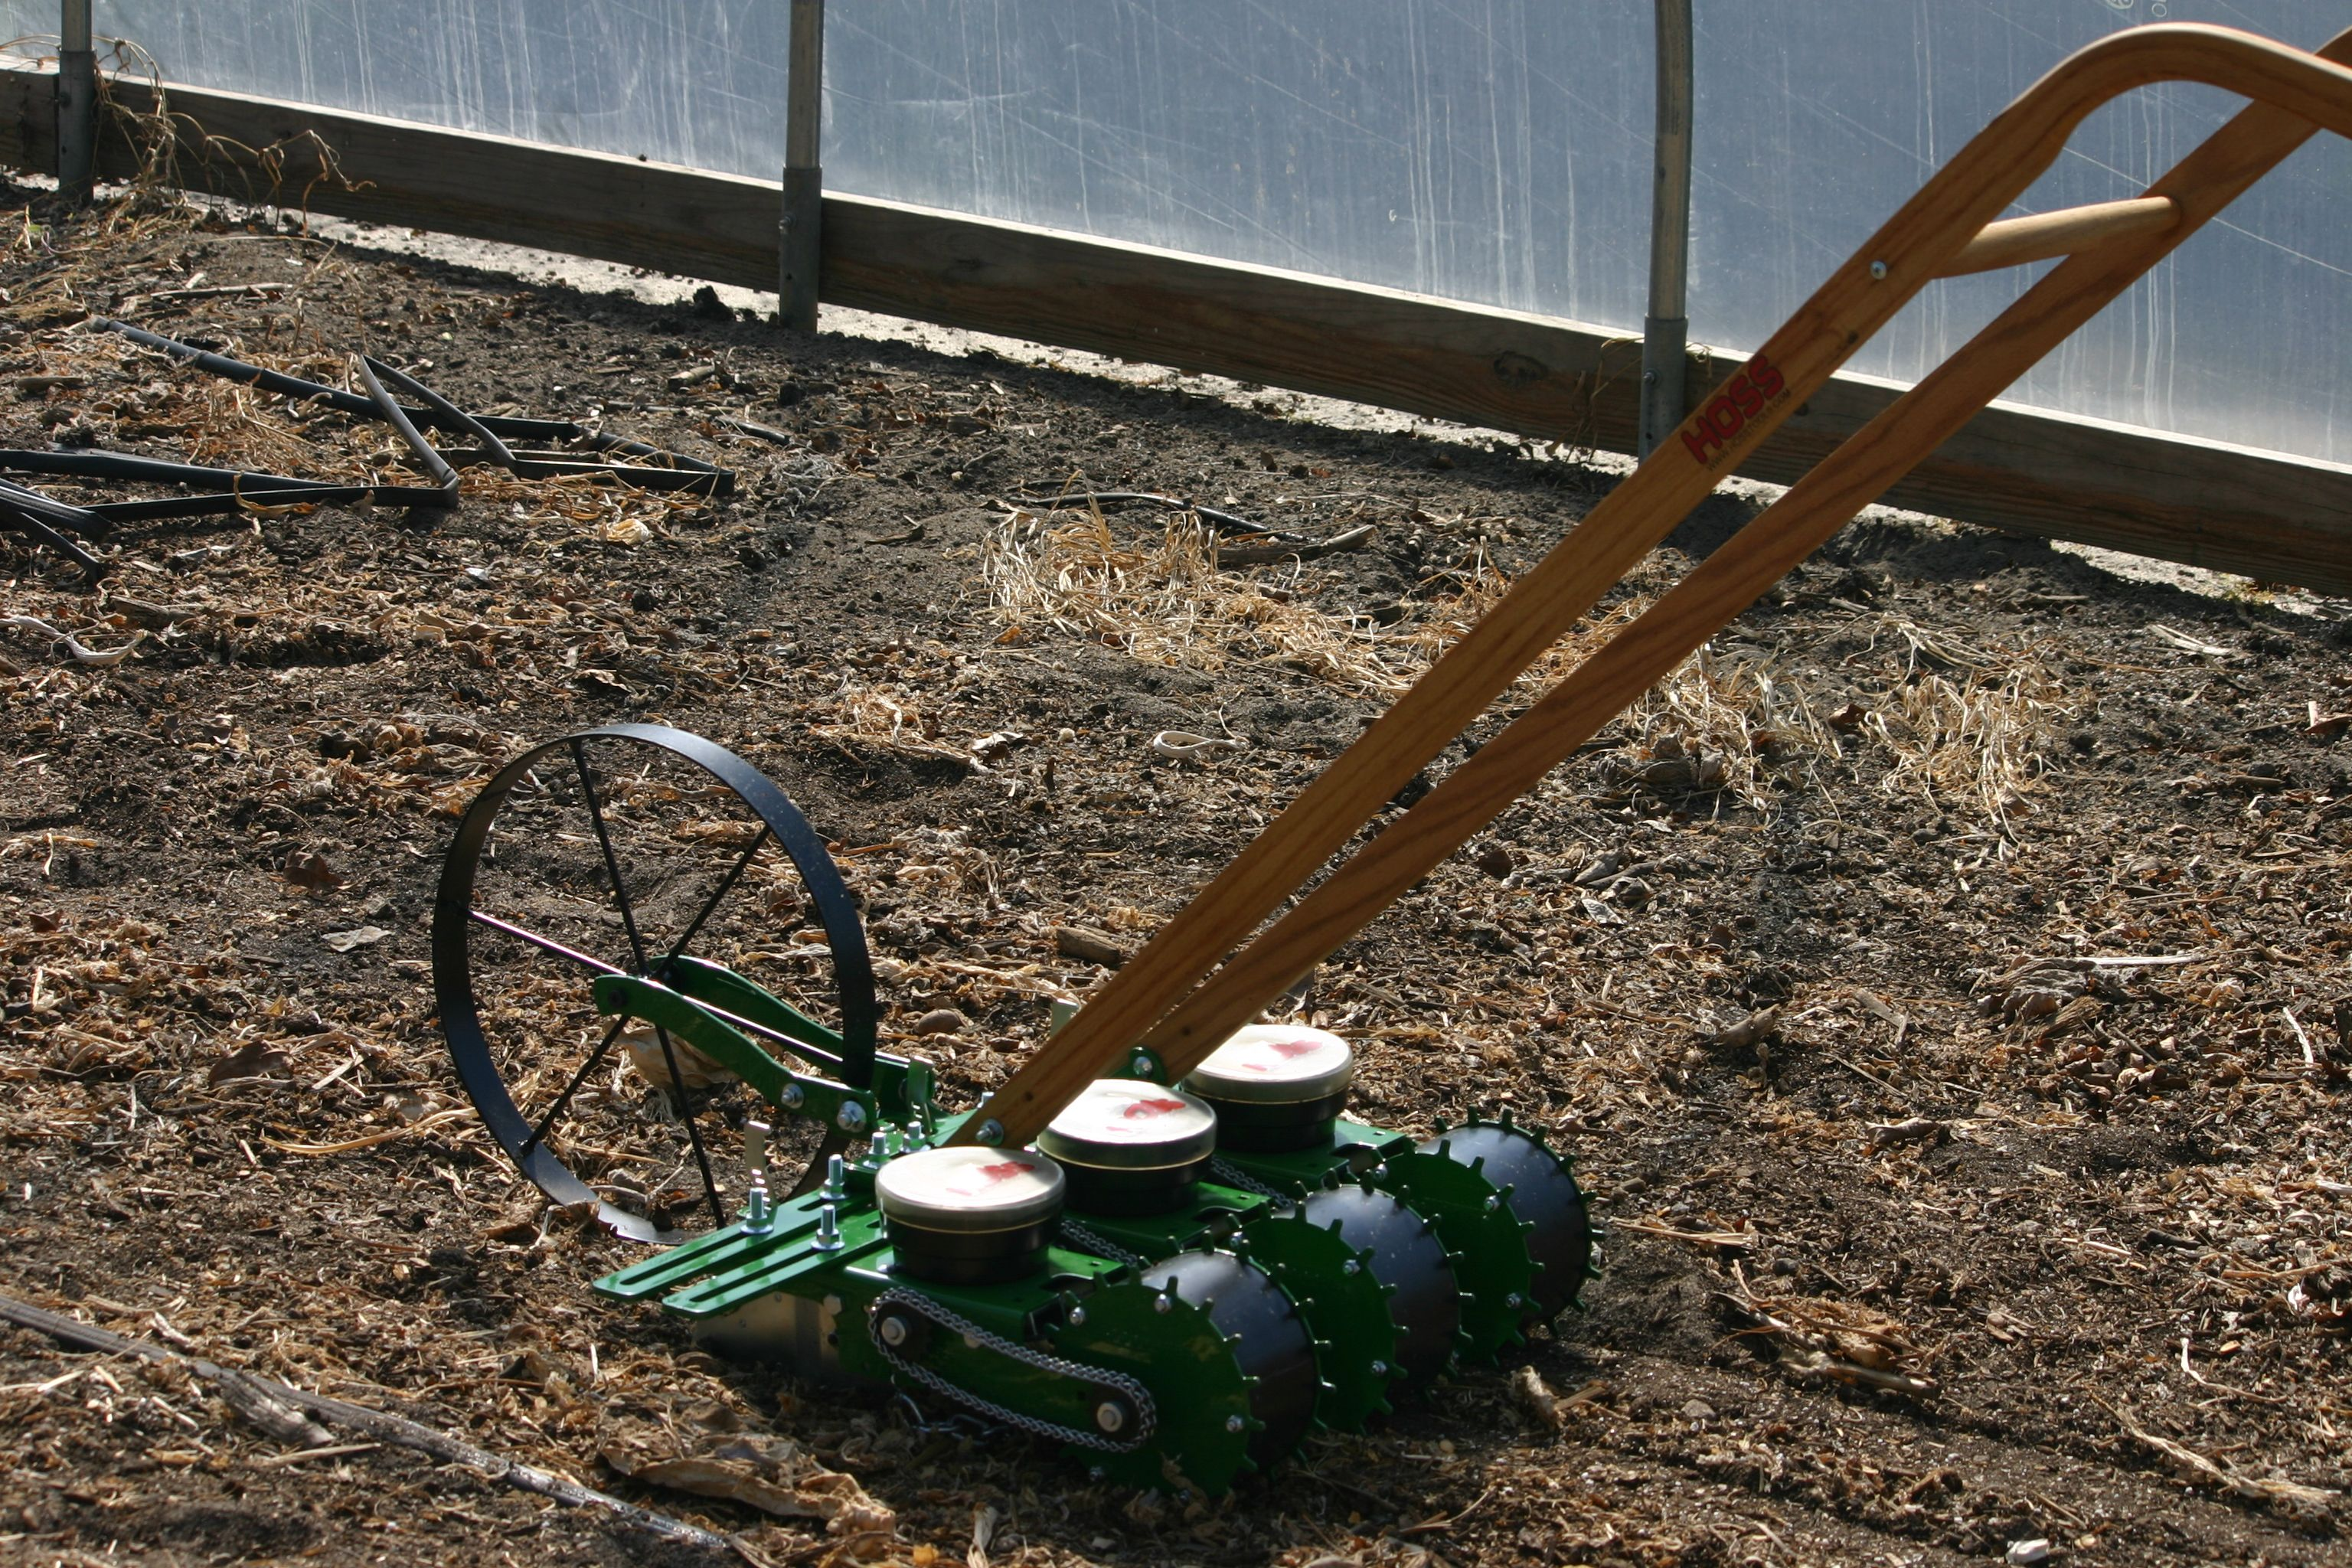 This Incredible Wheel Hoe And Seeder Setup Allows You To Plant Multiple Rows At A Time Using Four Spreader Bar Exten Garden Seeds Indoor Seed Starting Planters